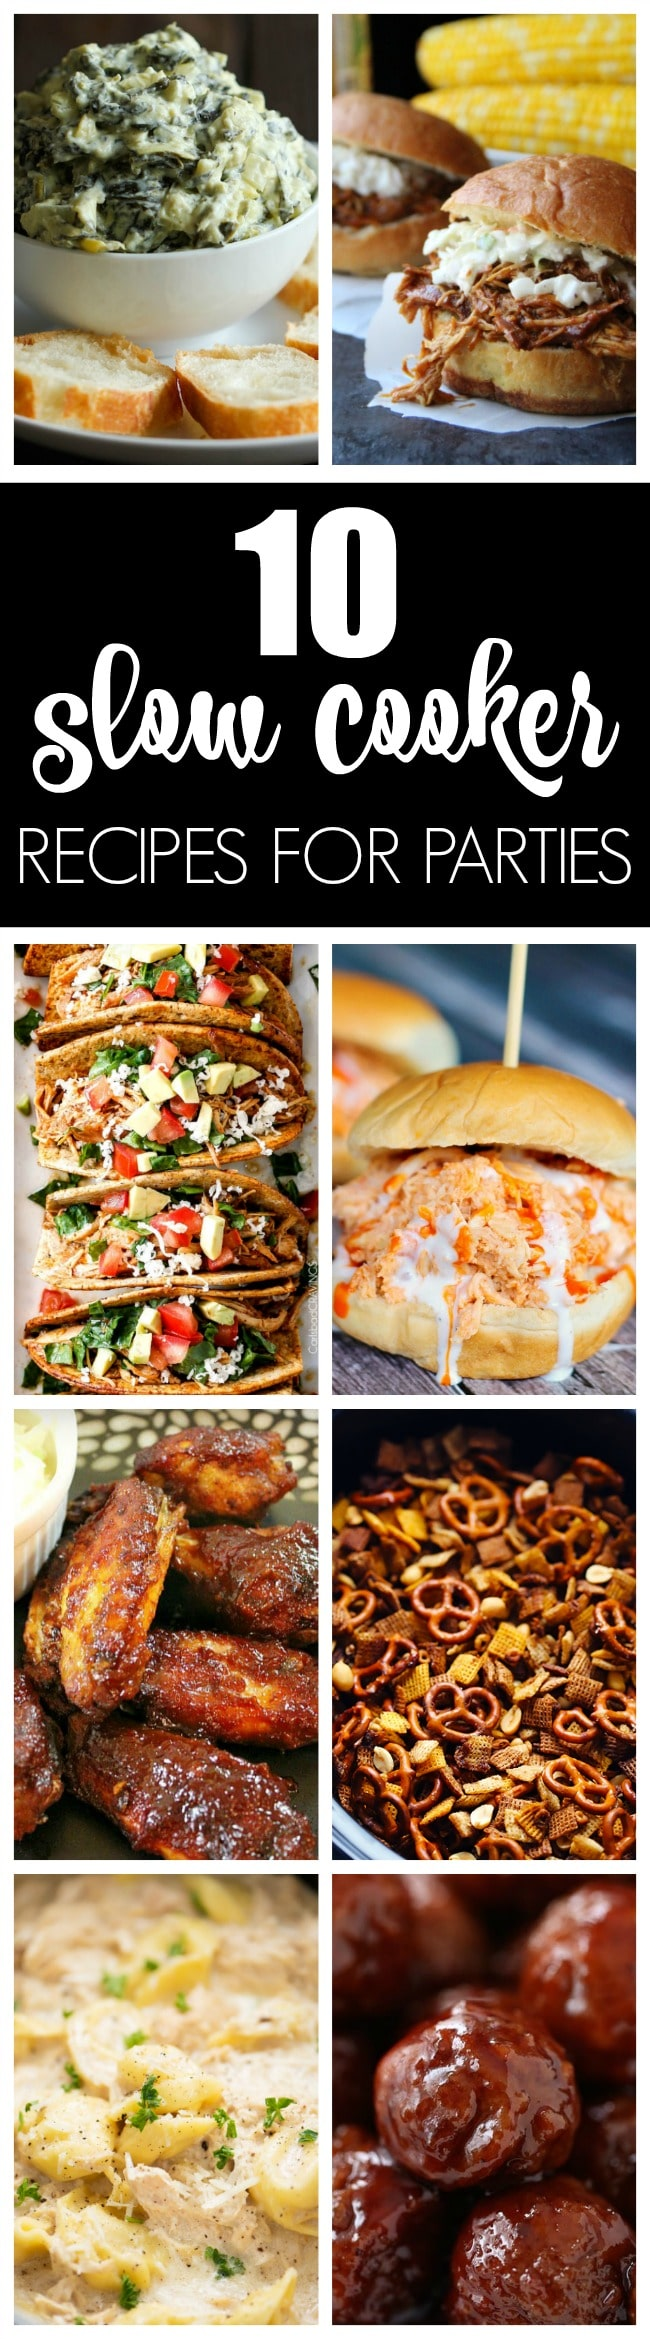 10 Best Crockpot Recipes For Parties - Pretty My Party